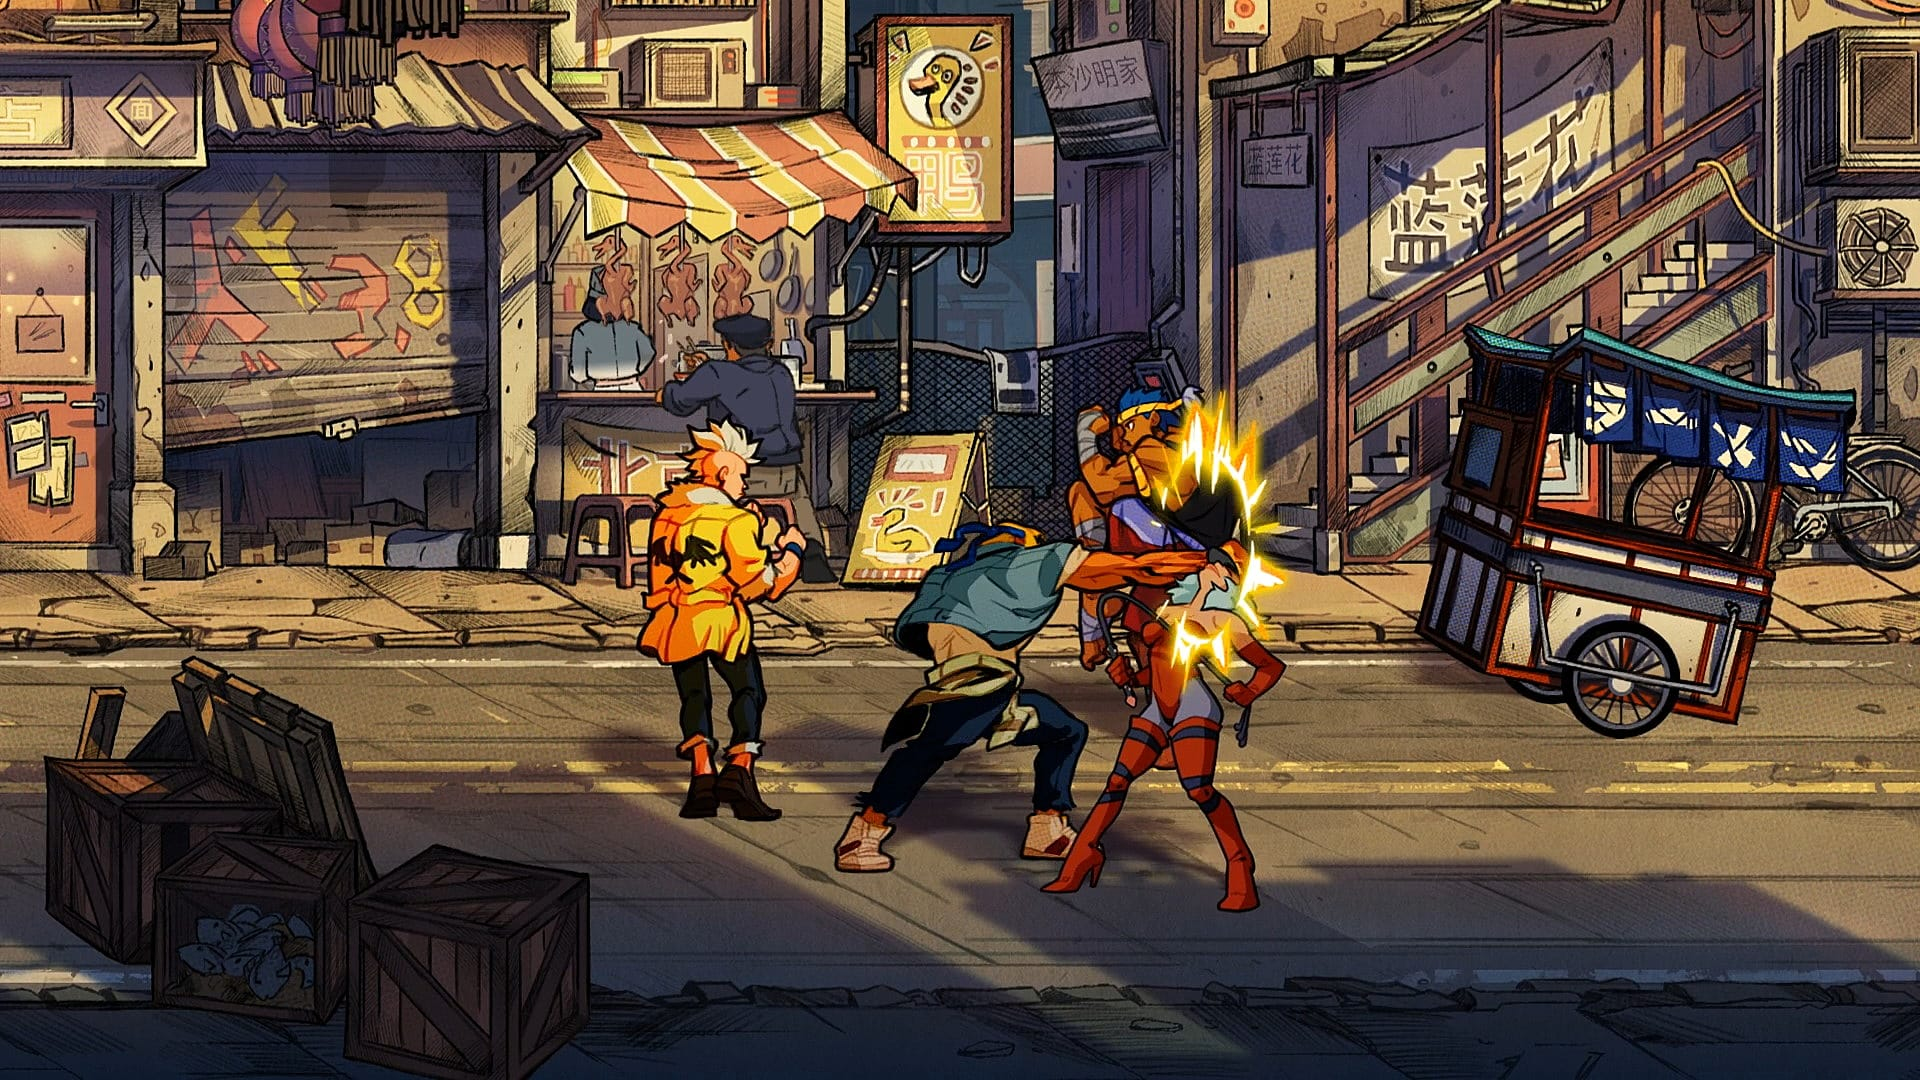 PAX West 2019 Preview: Solving All My Problems With Violence